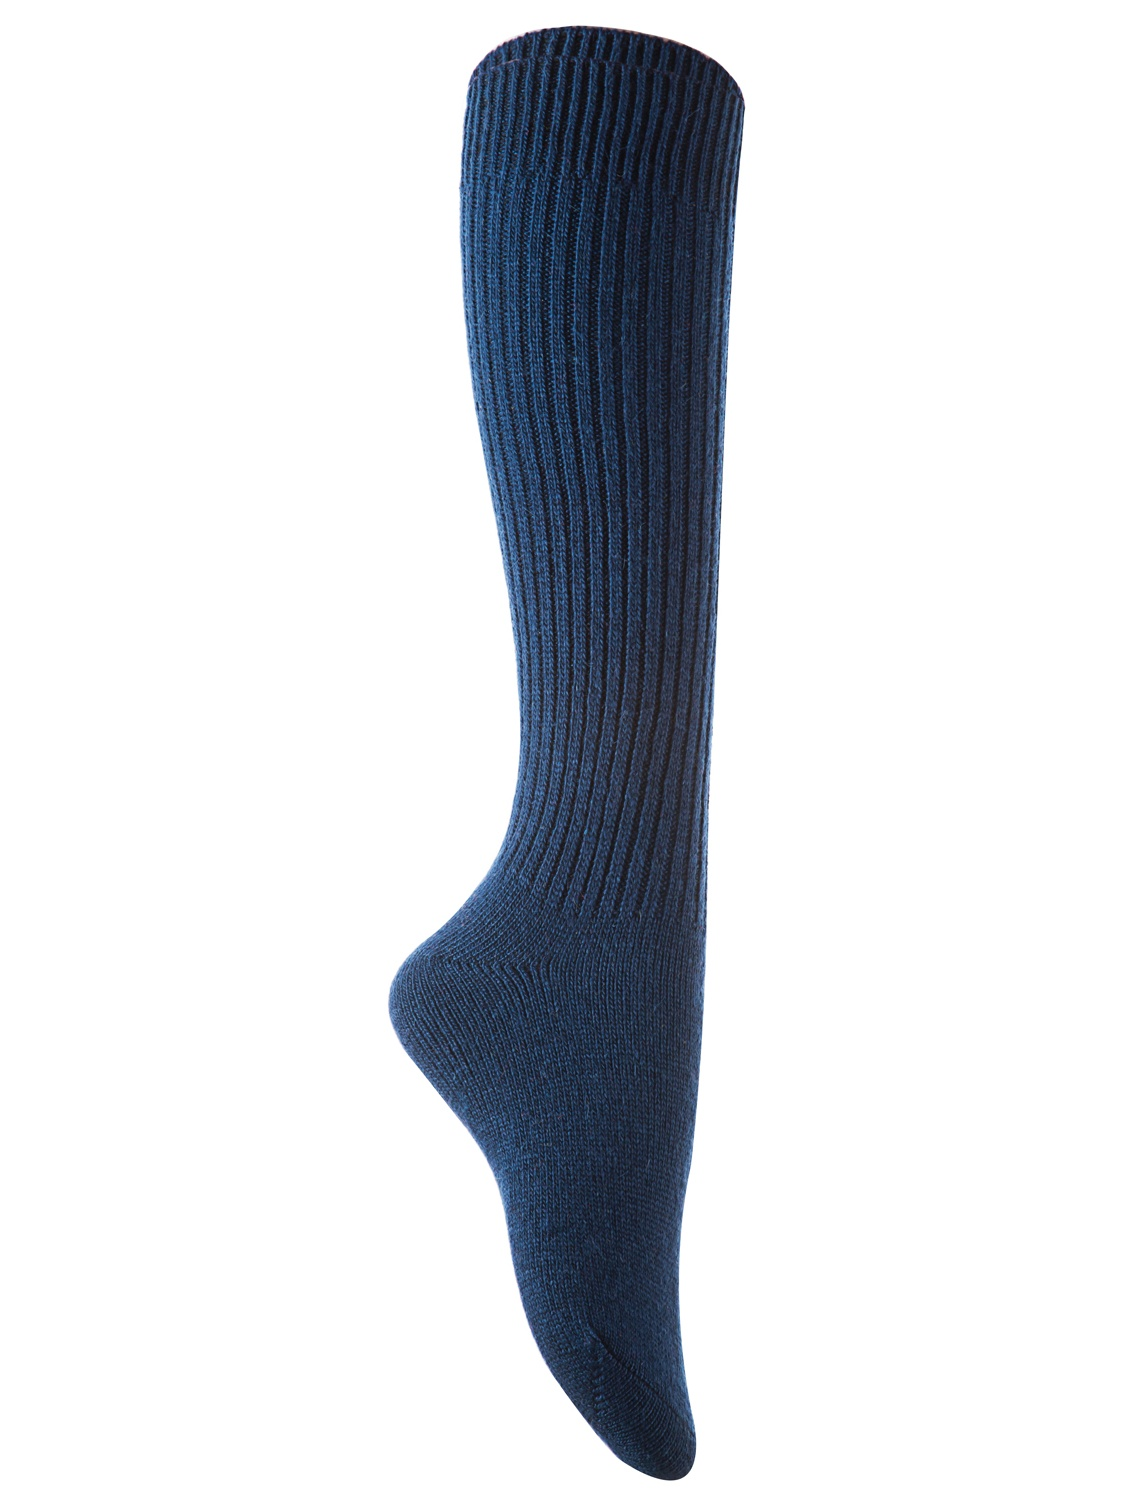 Lian Style Big Girl's 4 Pairs Knee-high Knitted Wool Socks Stripped FS05 Size 6-9(Black,Grey,Beige,Navy)